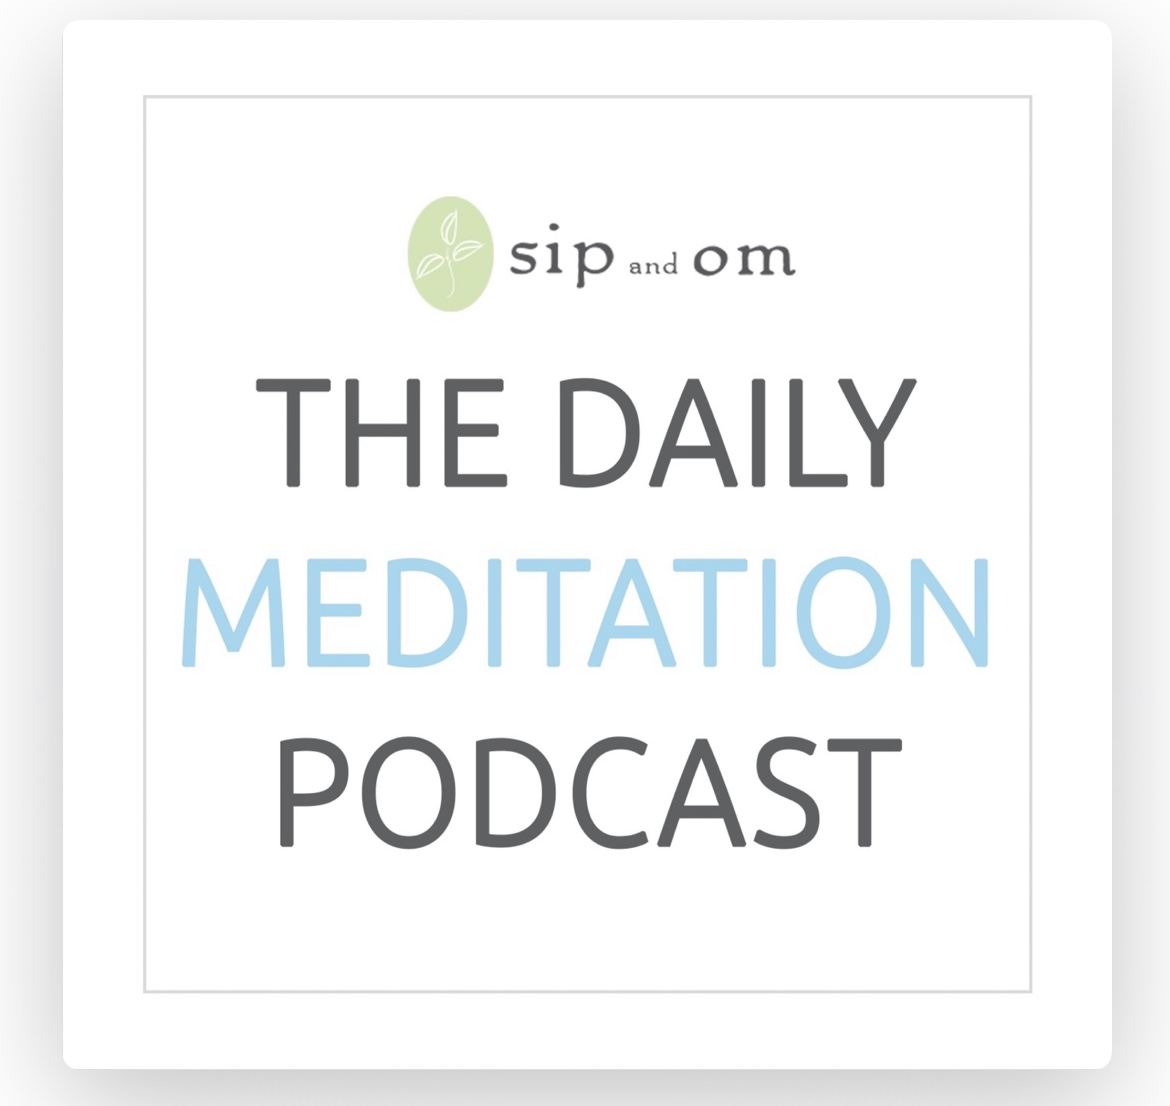 https://itunes.apple.com/ca/podcast/daily-meditation-podcast/id892107837?mt=2